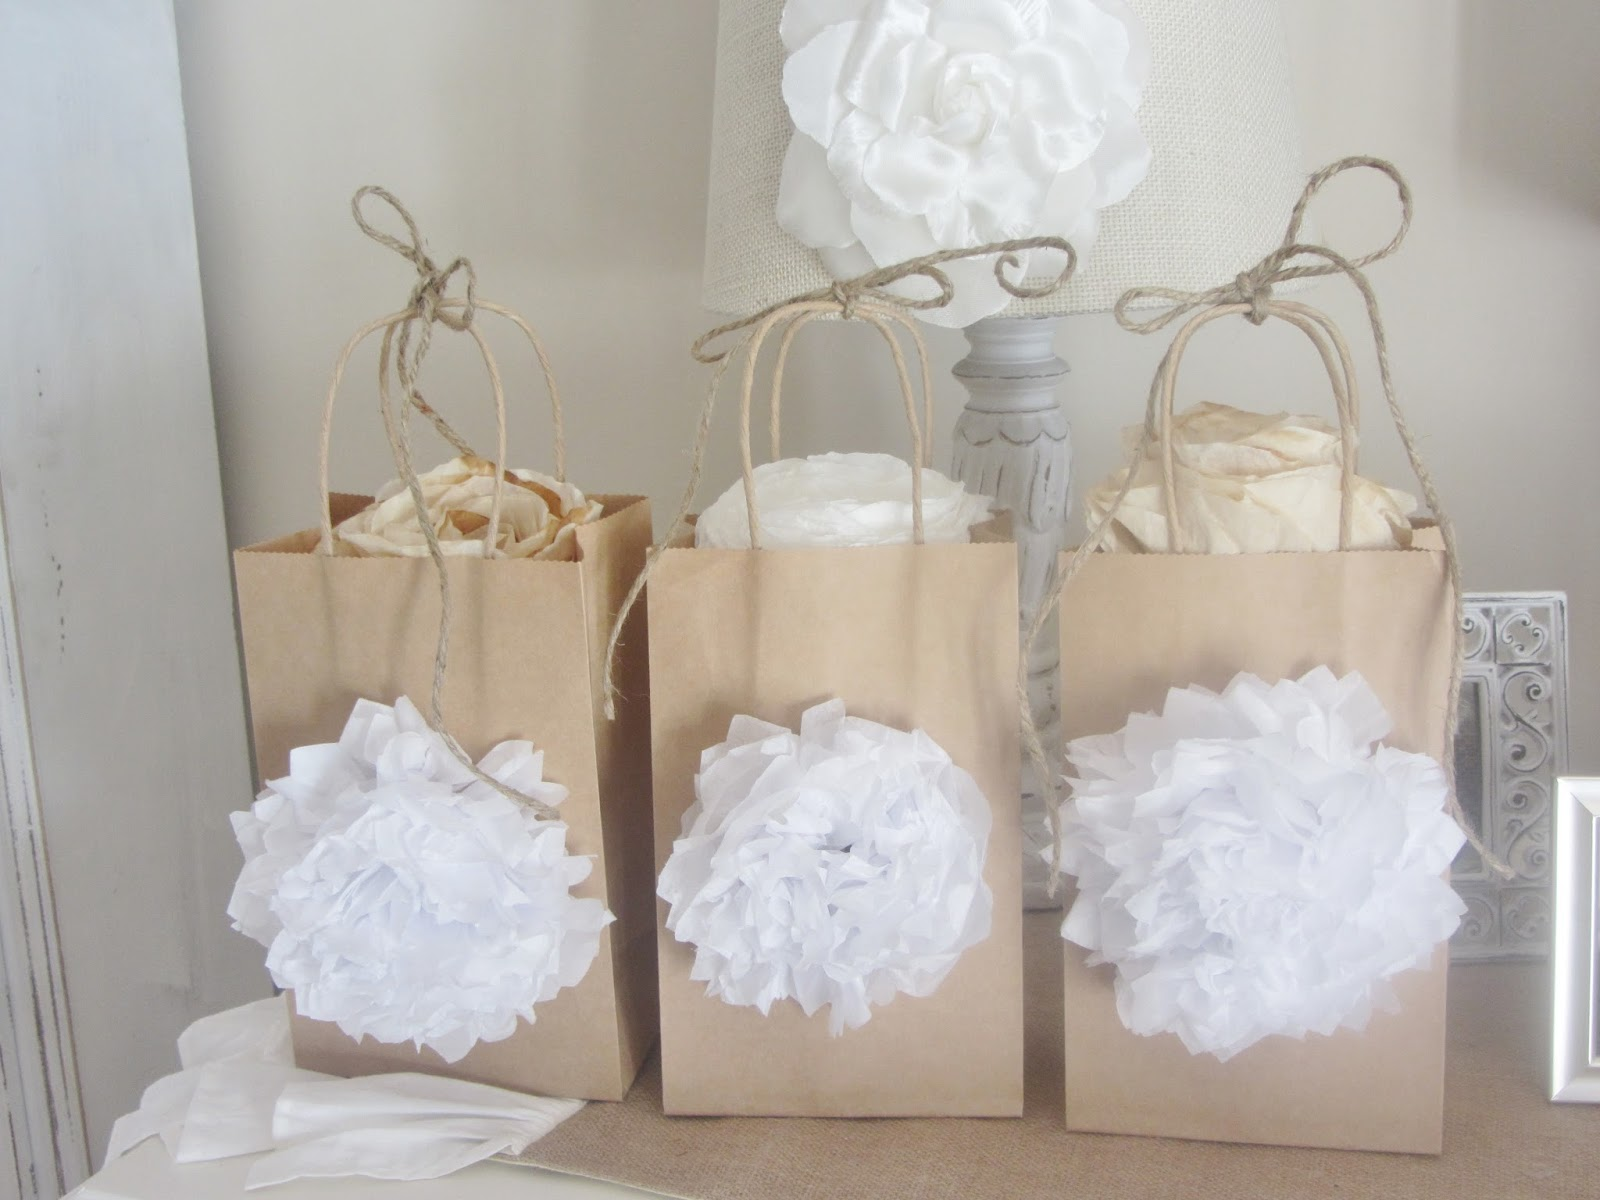 Ways to decorate gift bags - Diy 9 Ways To Decorate With Colored Tissue Paper